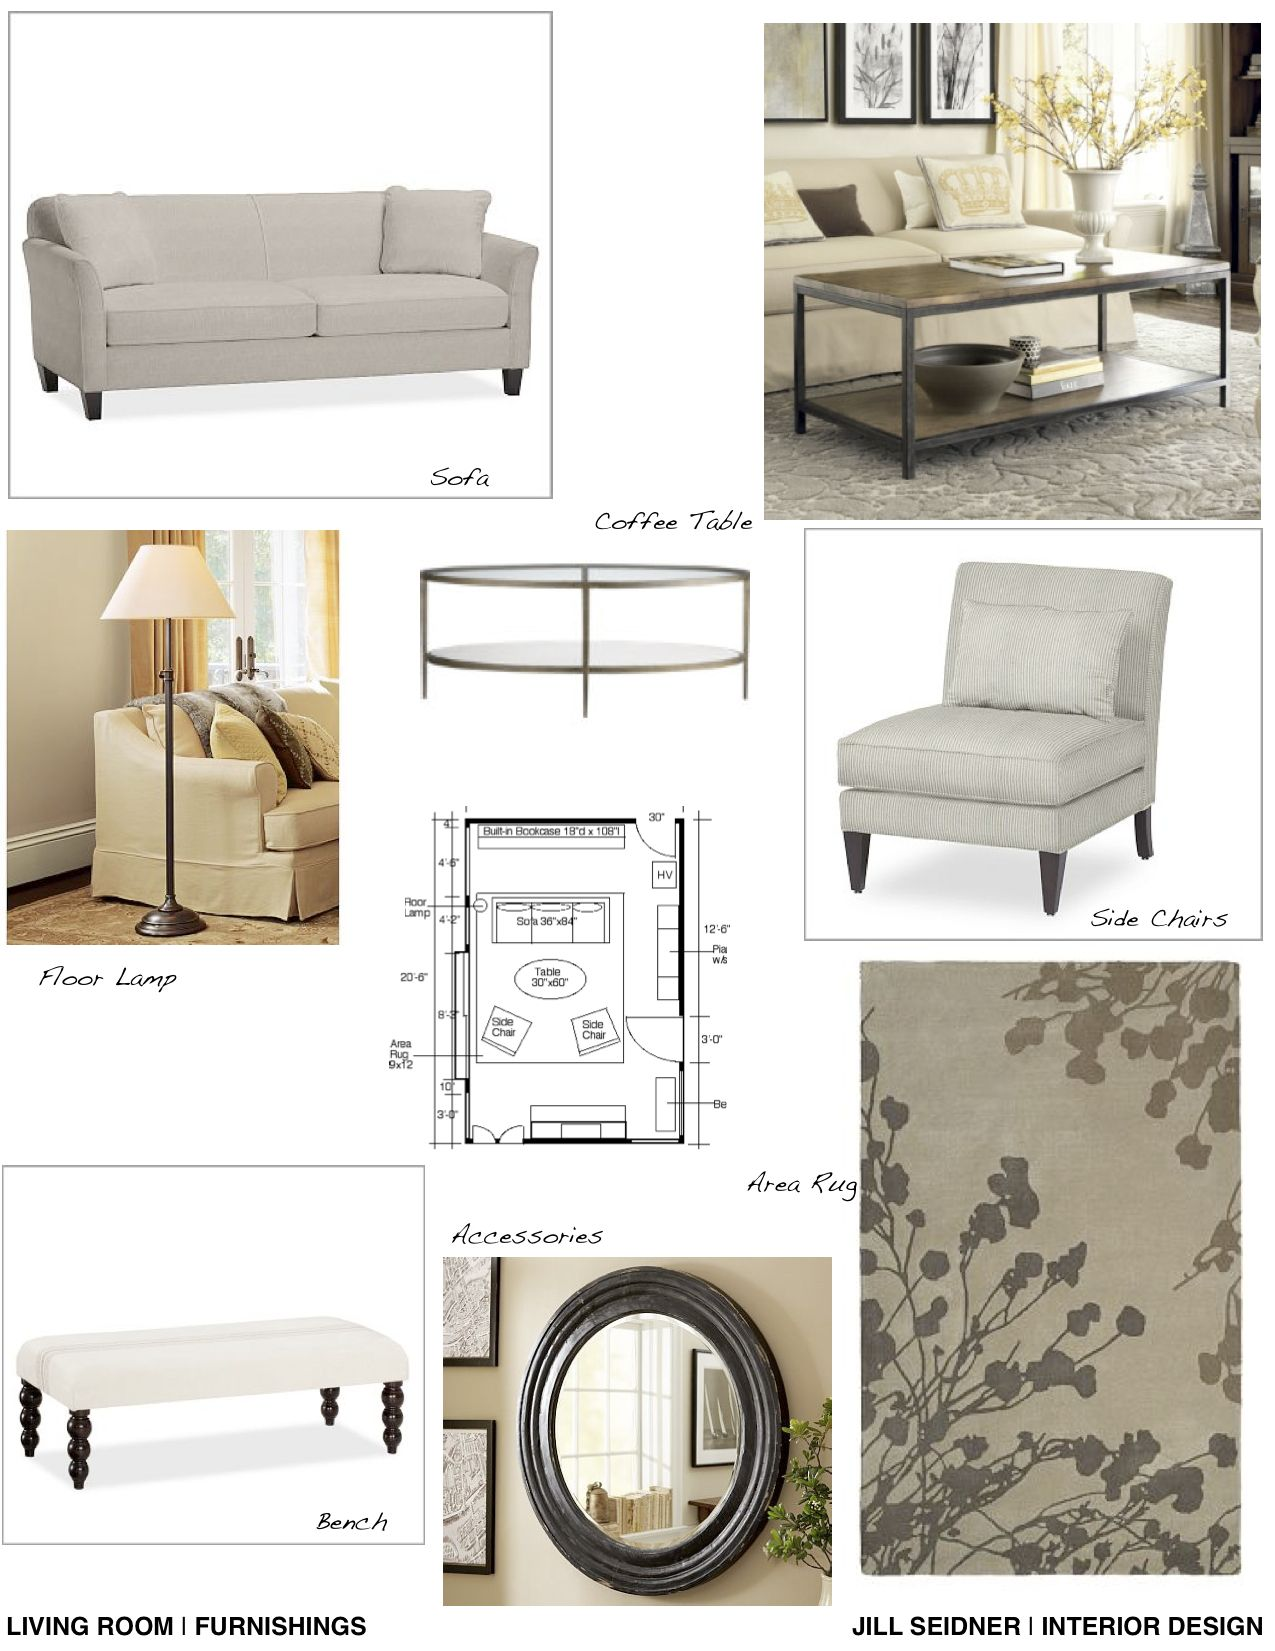 Furnishings Concept Board For Living Room Project With Images